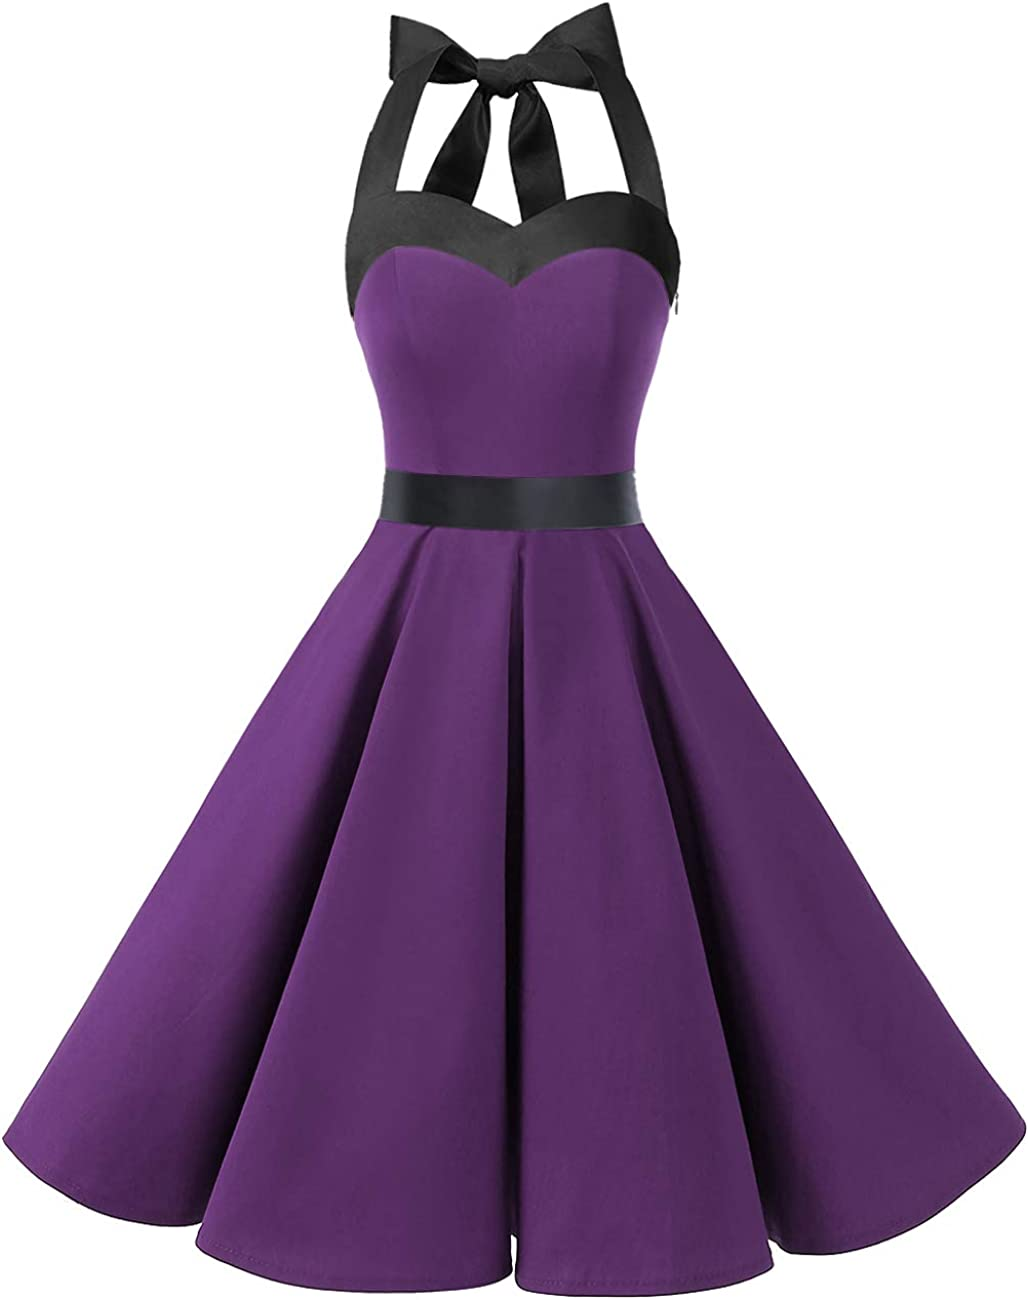 TALLA XS. DRESSTELLS® Halter 50s Rockabilly Polka Dots Audrey Dress Retro Cocktail Dress Purple Black XS